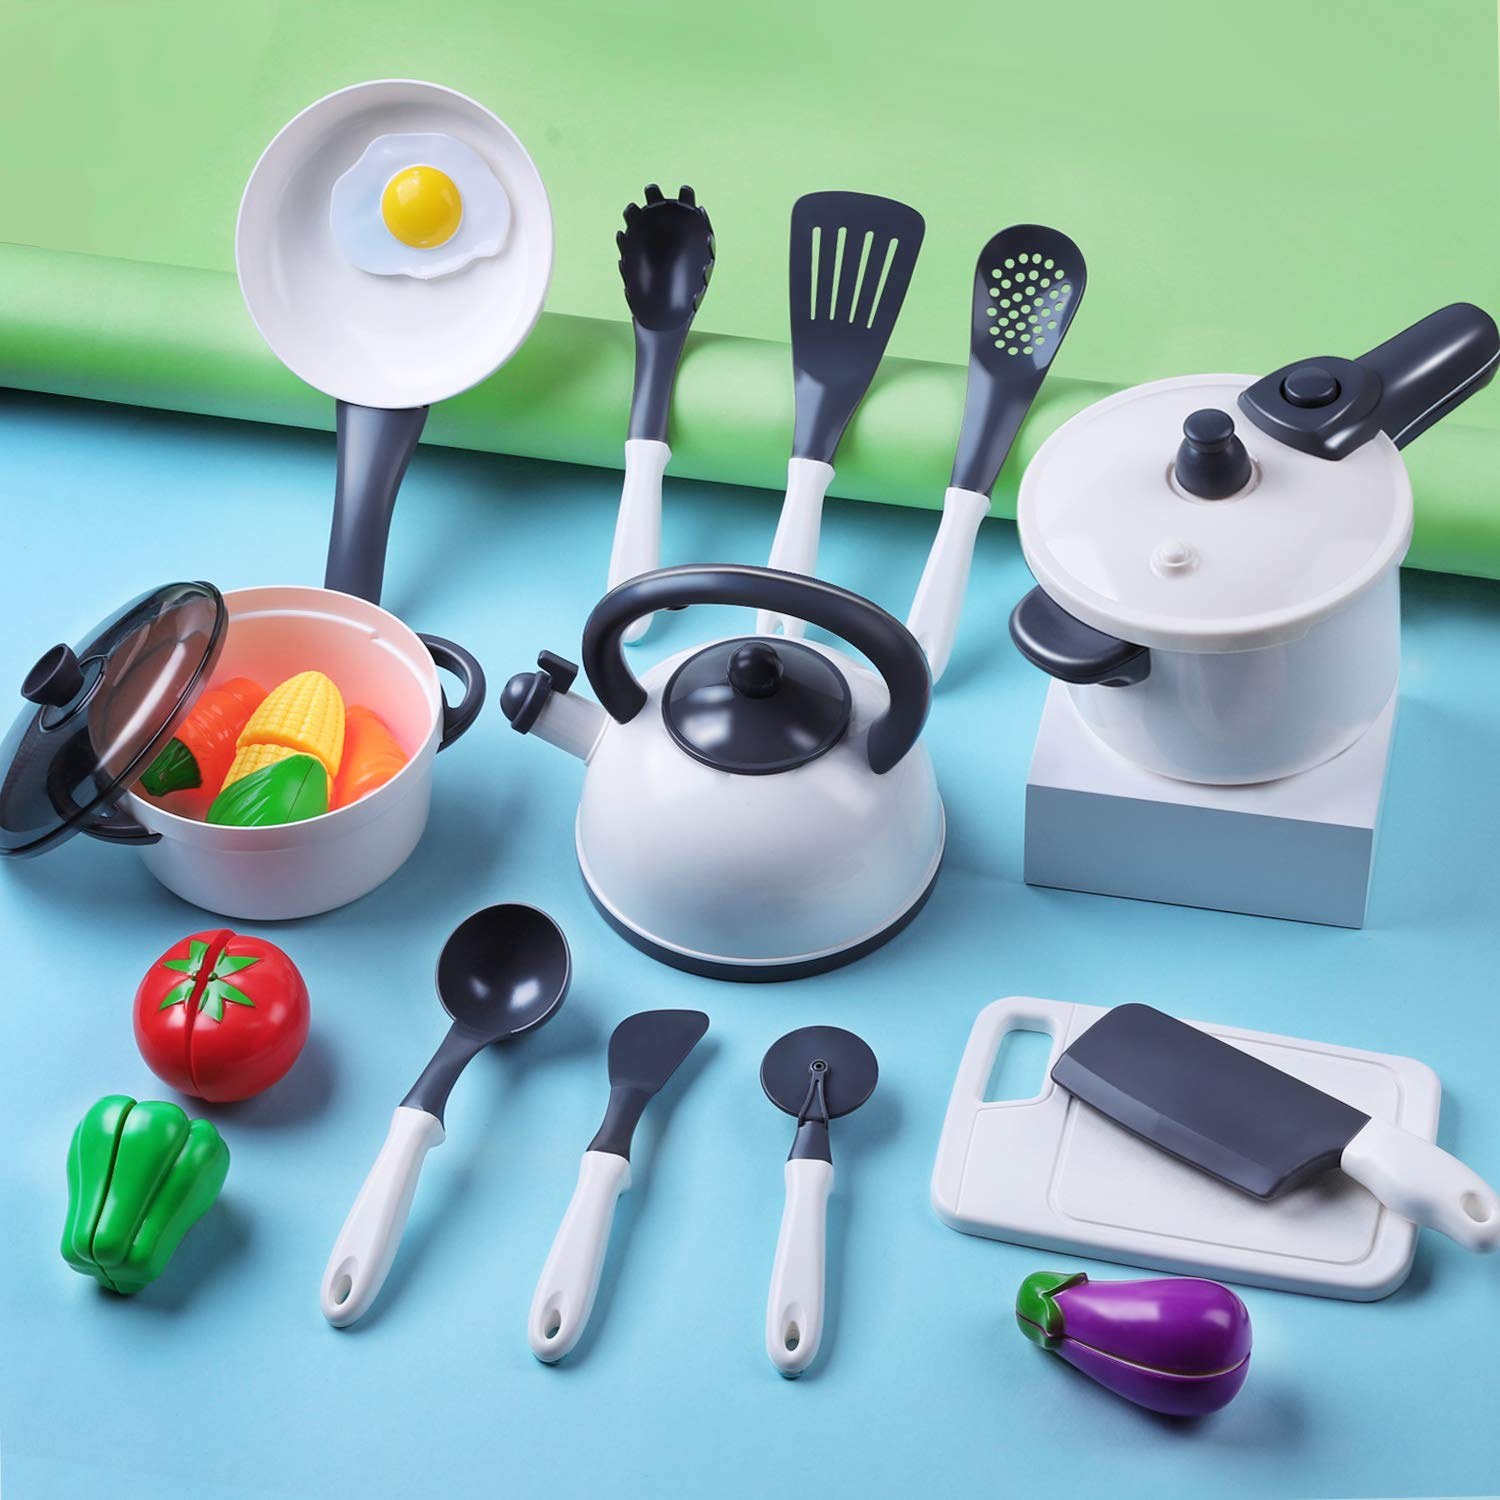 iPlay, iLearn Kids Kitchen Accessories Playset, Pretend Play Cooking Set, Toy Pots N Pans, Cookware, Utensils, Vegetables, Birthday Gift for 3 4 5 Years Old Baby Infant Toddlers Boys Girls Children